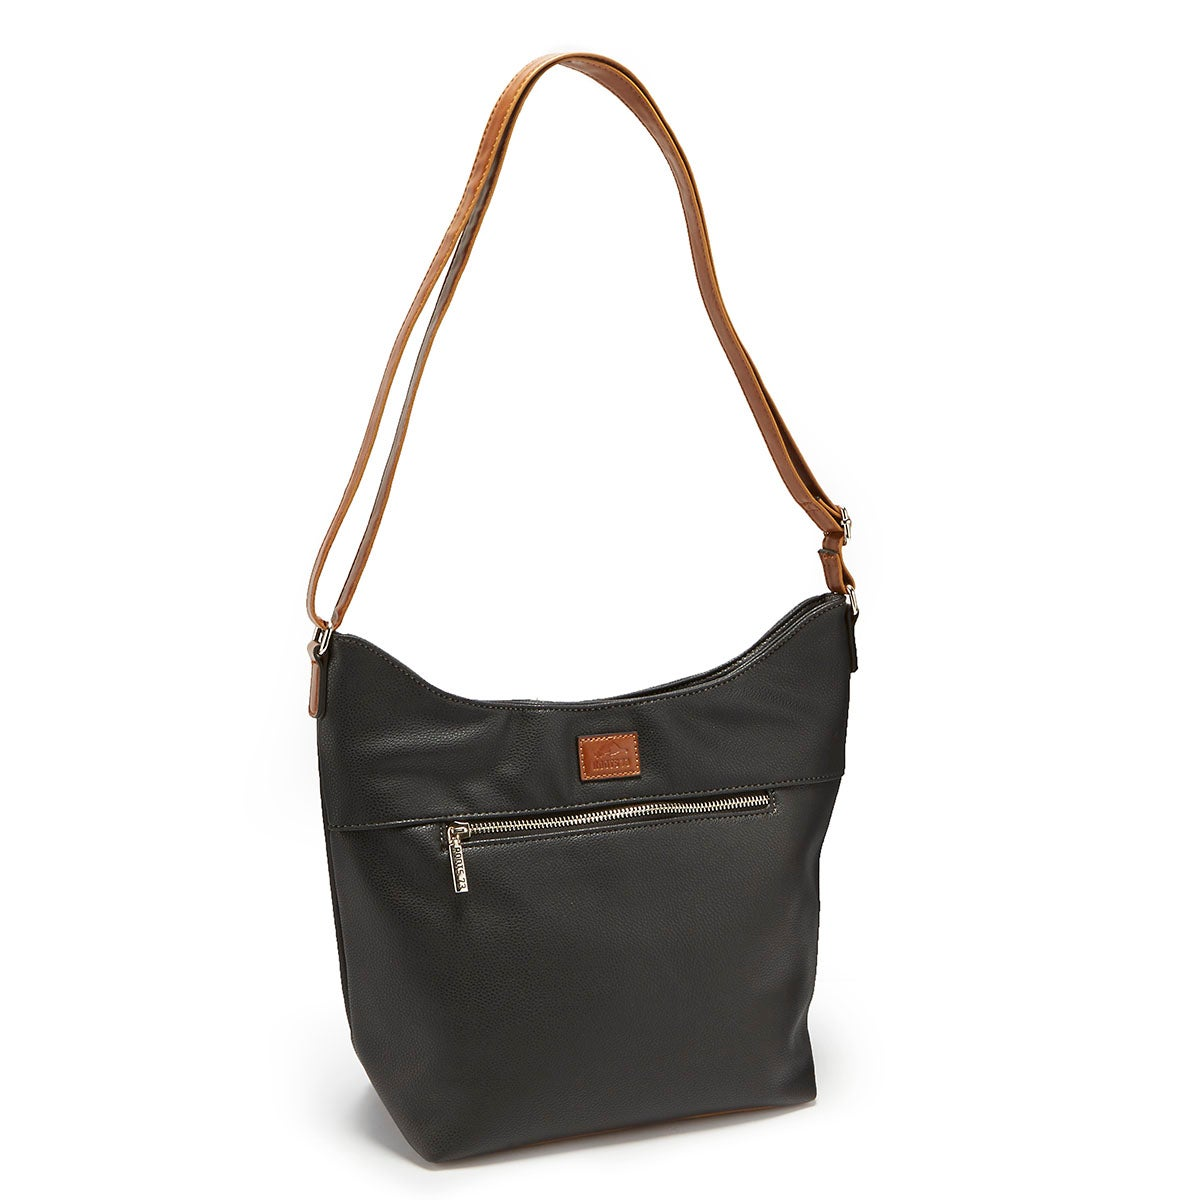 Lds Roots73 blk north/south zip hobo bag